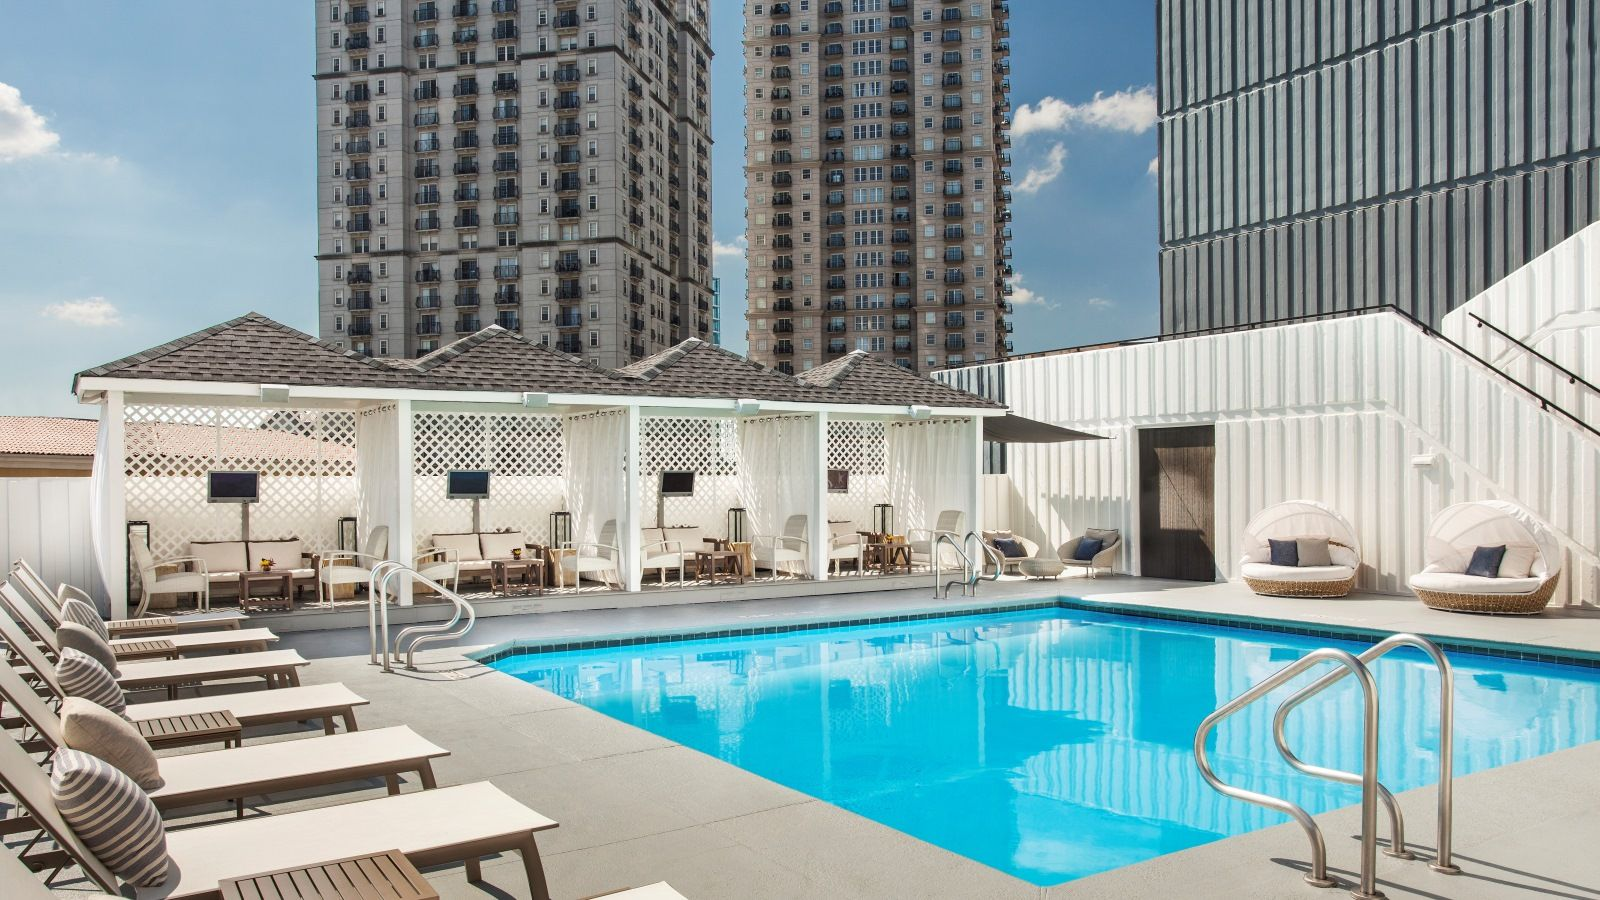 Wetdeck W Atlanta Midtown